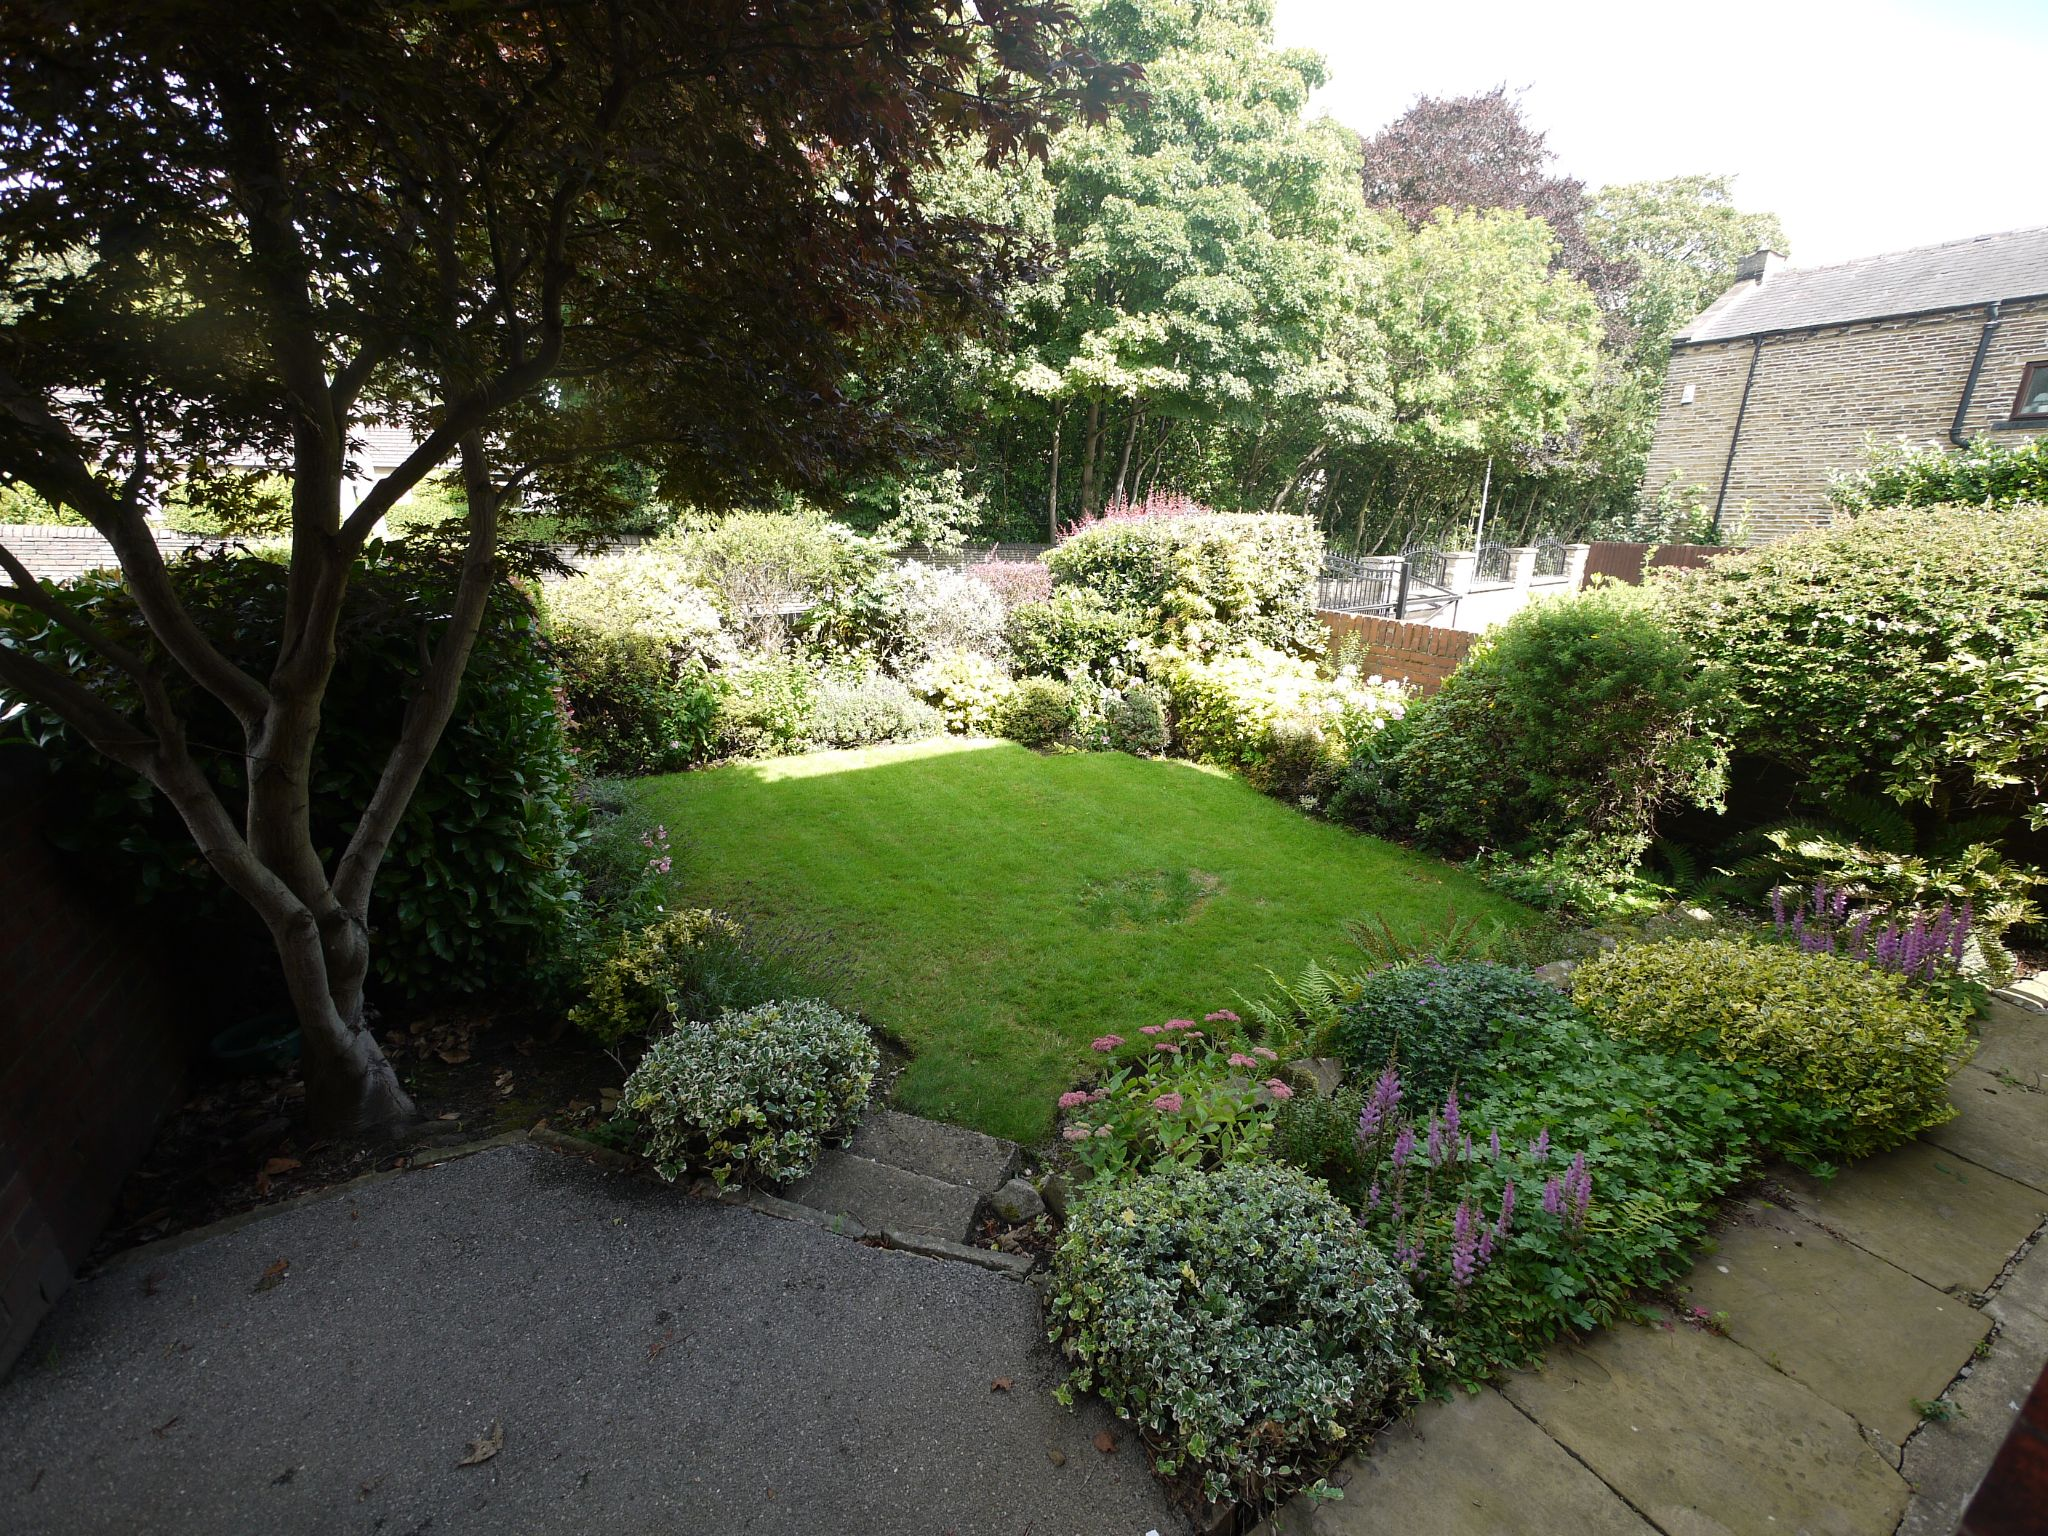 4 bedroom detached house SSTC in Halifax - Photograph 15.